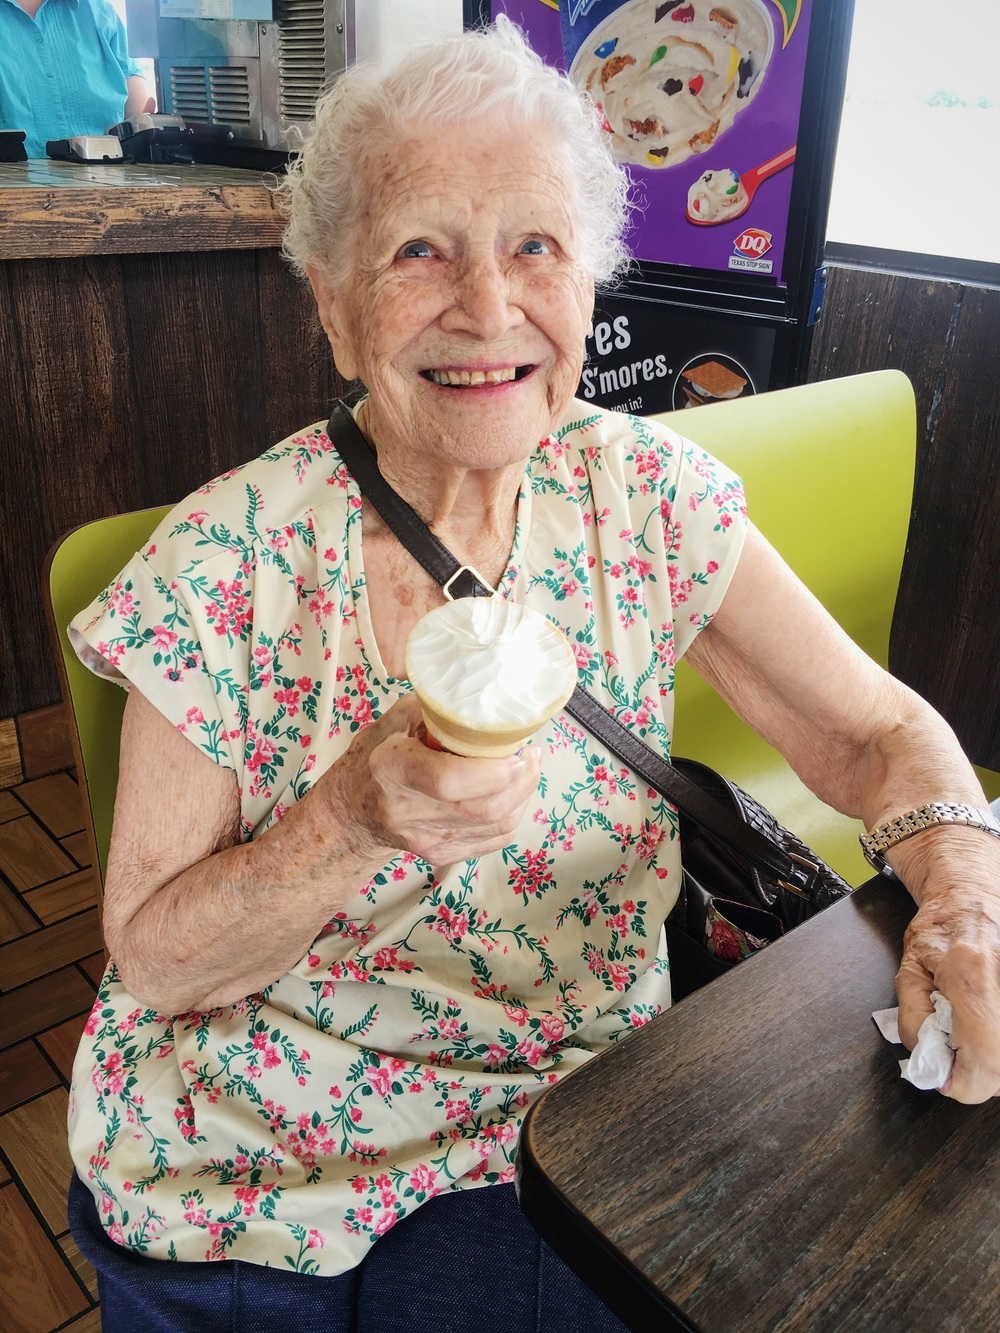 """A beautiful woman smiled at me after I ordered my ice cream cone. Her eyes sparkling she looked at my cone and said """"I got the big cone. It's so good."""" I said """"Indeed! What's your name?"""" she replied """"Well I'm Frankie Stanford of Chillicothe, TX but I was born on the Red River. I'm 98 years old."""" We talked about her family, she asked about mINe and I showed her my pictures. """"Can I take your picture?"""" I asked. """"Absolutely, I'm glad I'm still making friends?""""  Small interactions can change us forever."""